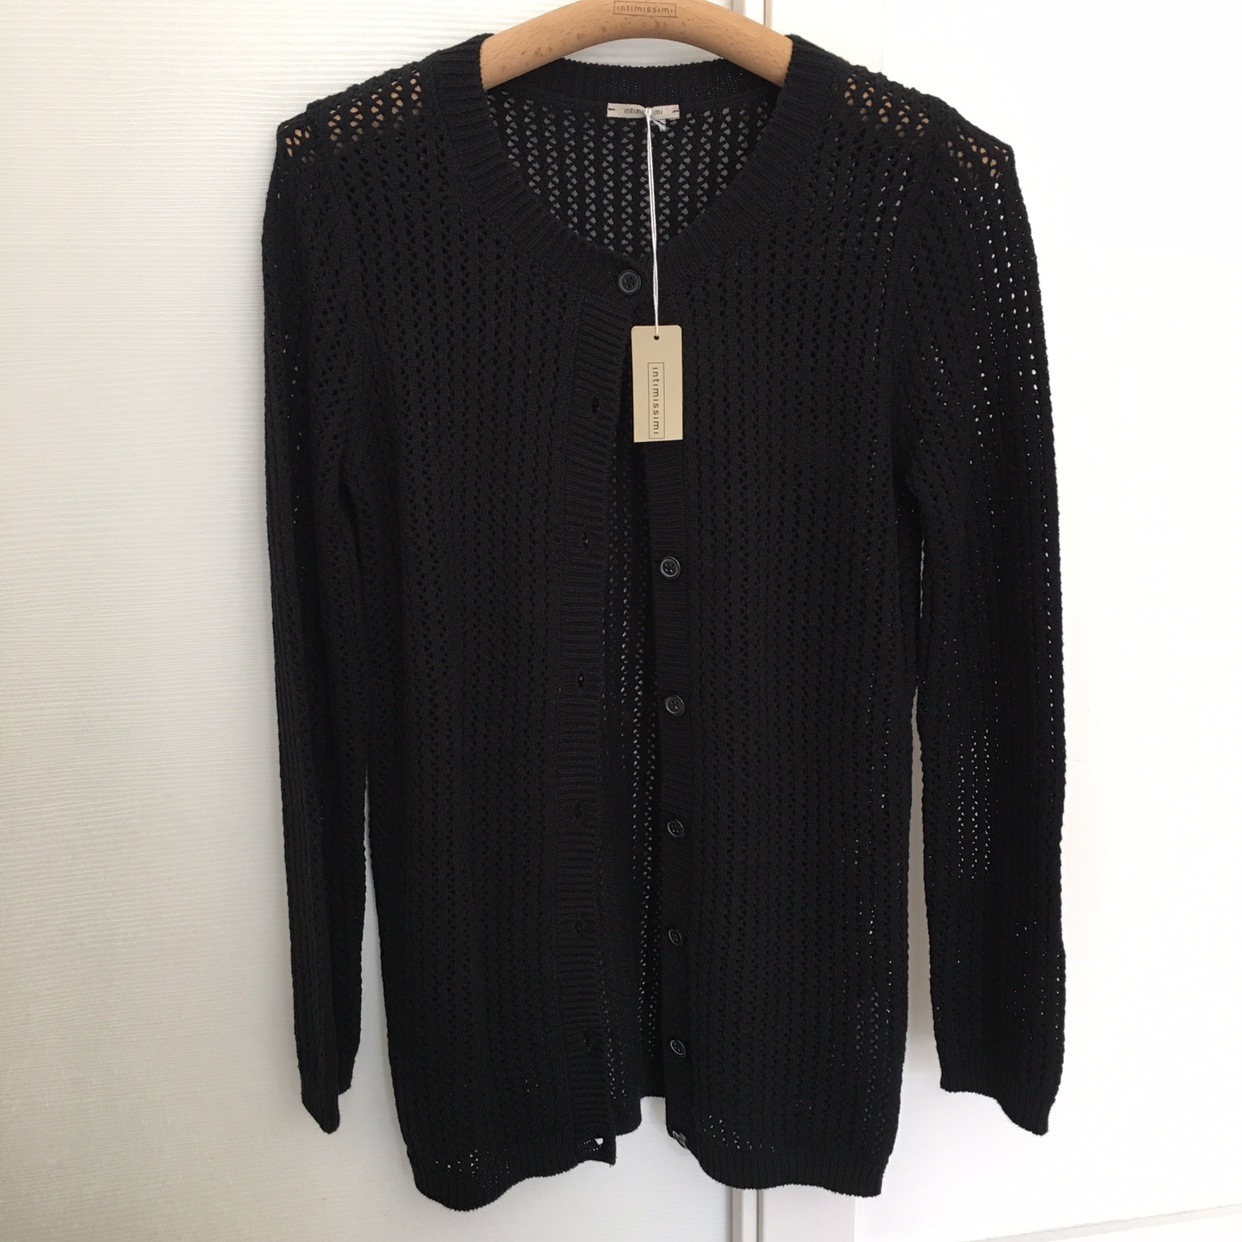 outlet store 50bec ad2ff Cardigan Intimissimi tg S nero, traforato 100%... - Depop